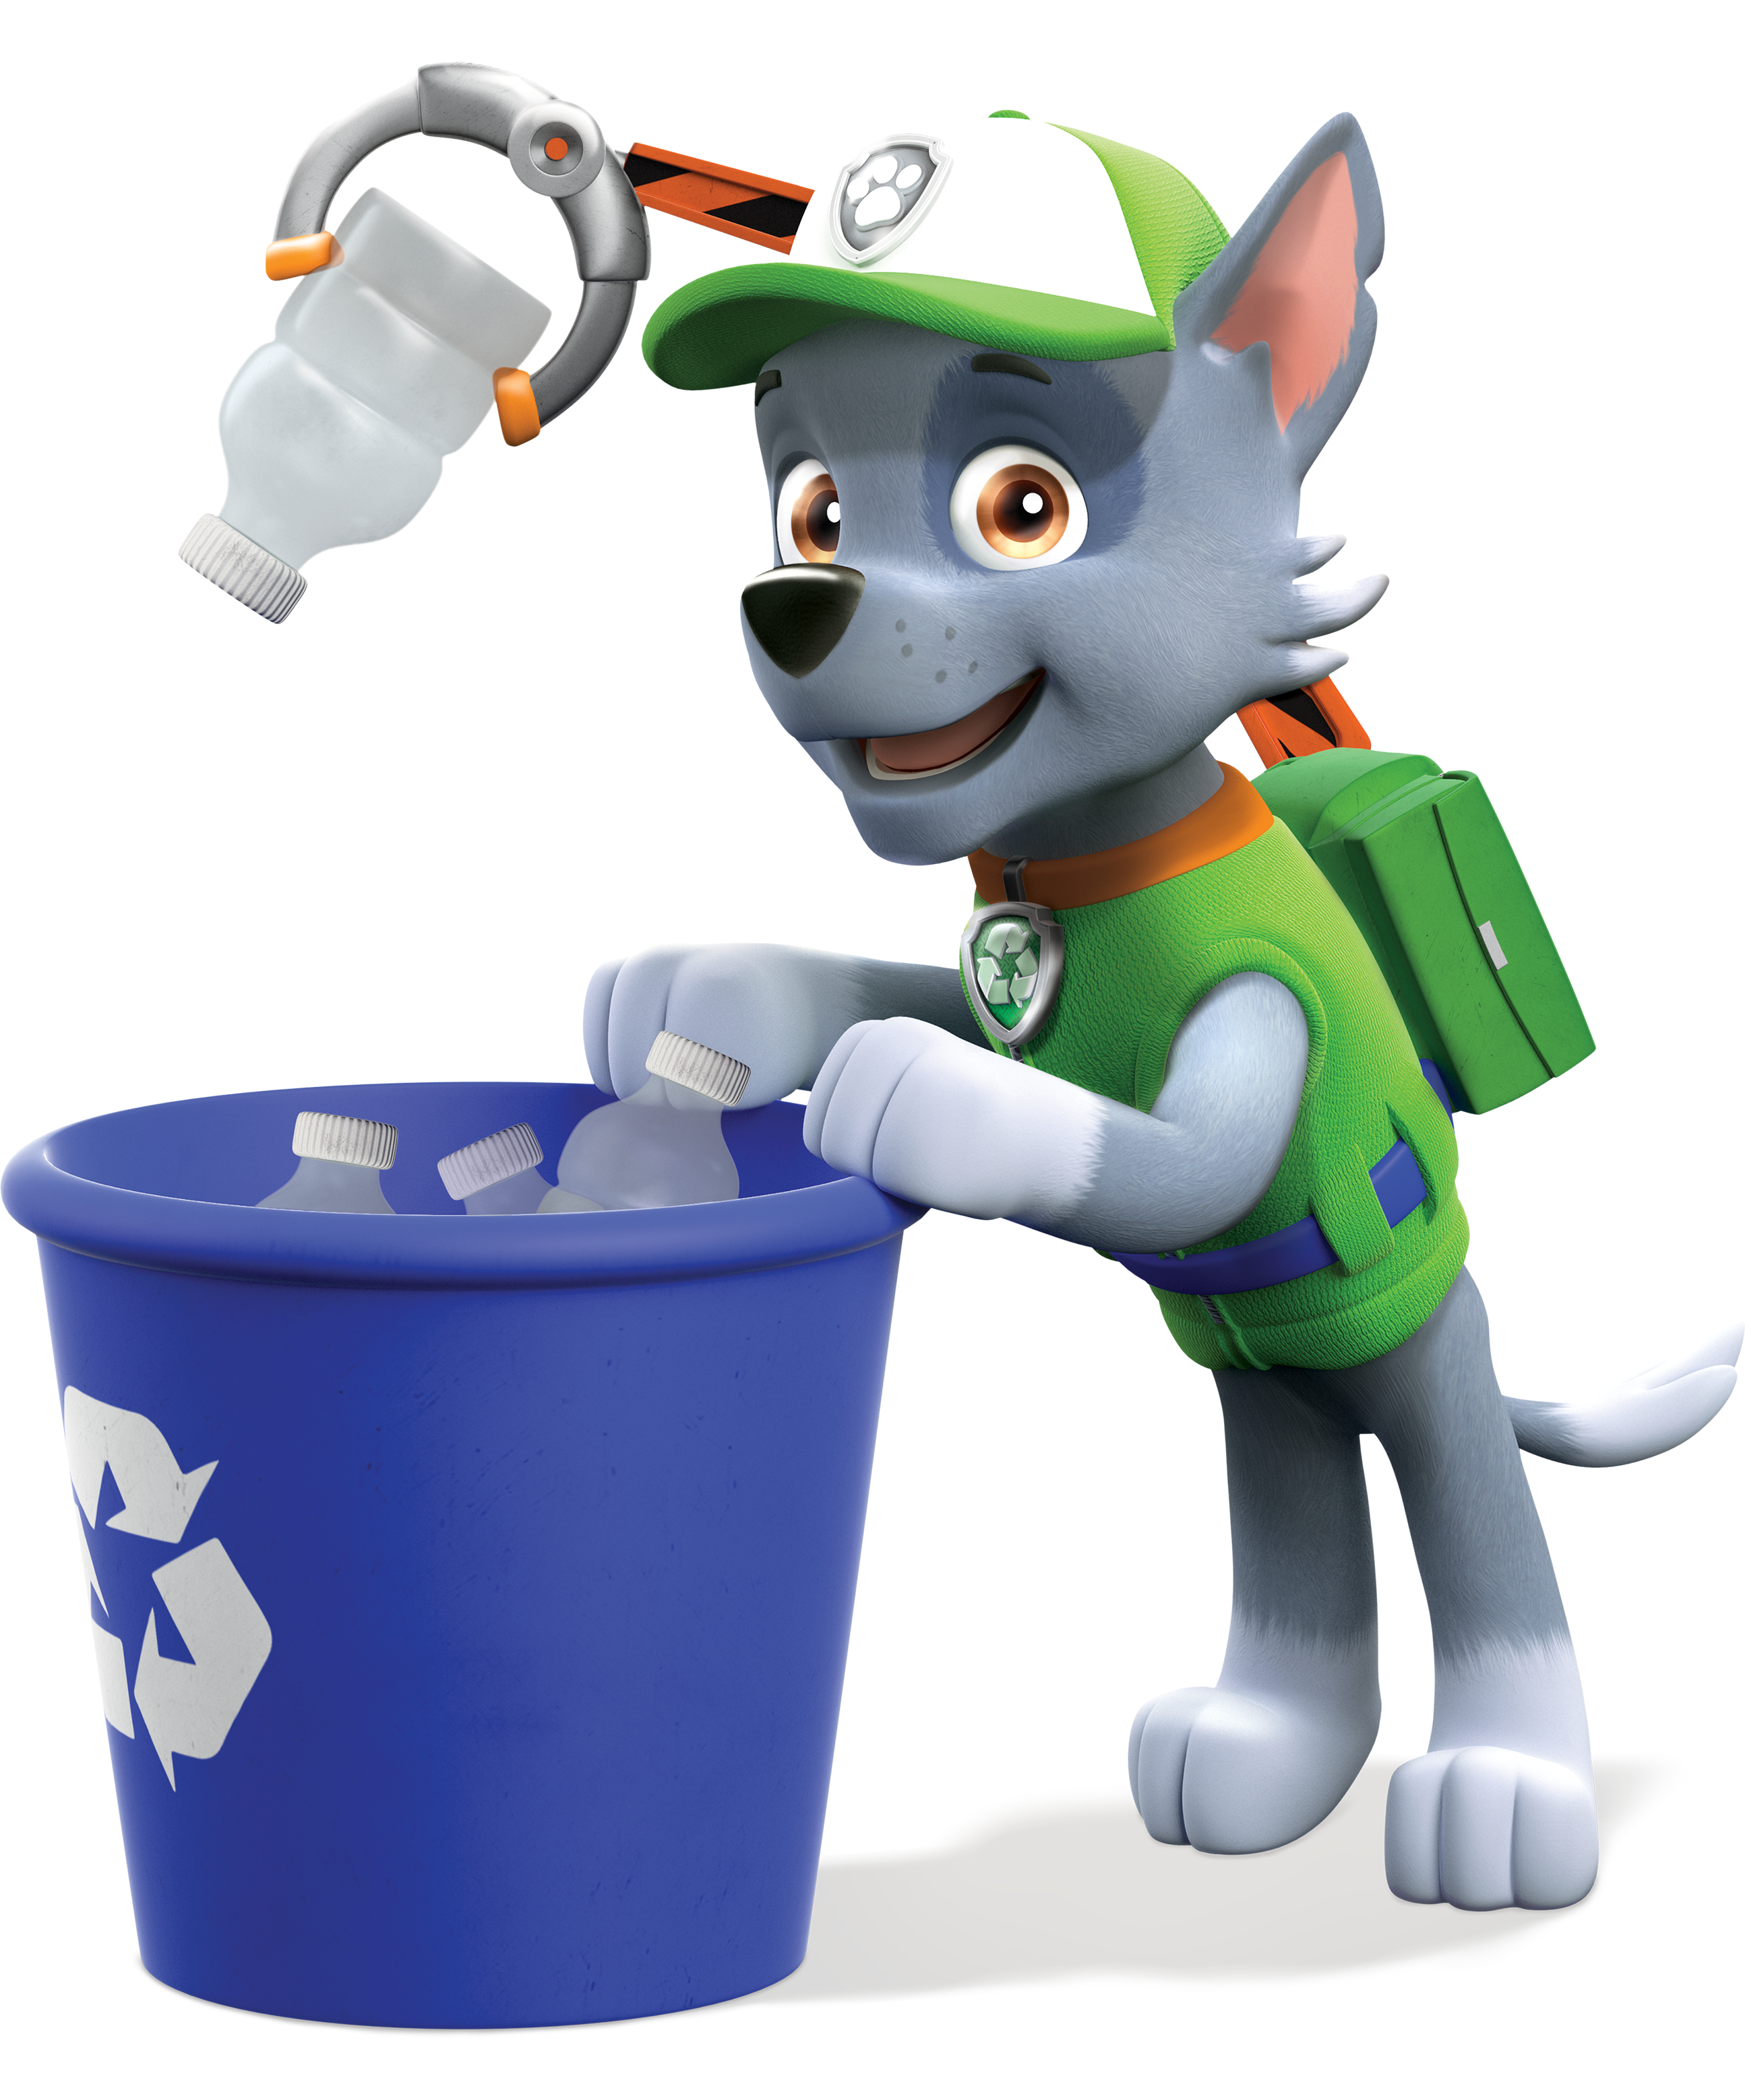 Paw patrol rubble clipart graphic freeuse stock Image - PAW Patrol Rocky Recycling Bin.png | PAW Patrol Wiki ... graphic freeuse stock